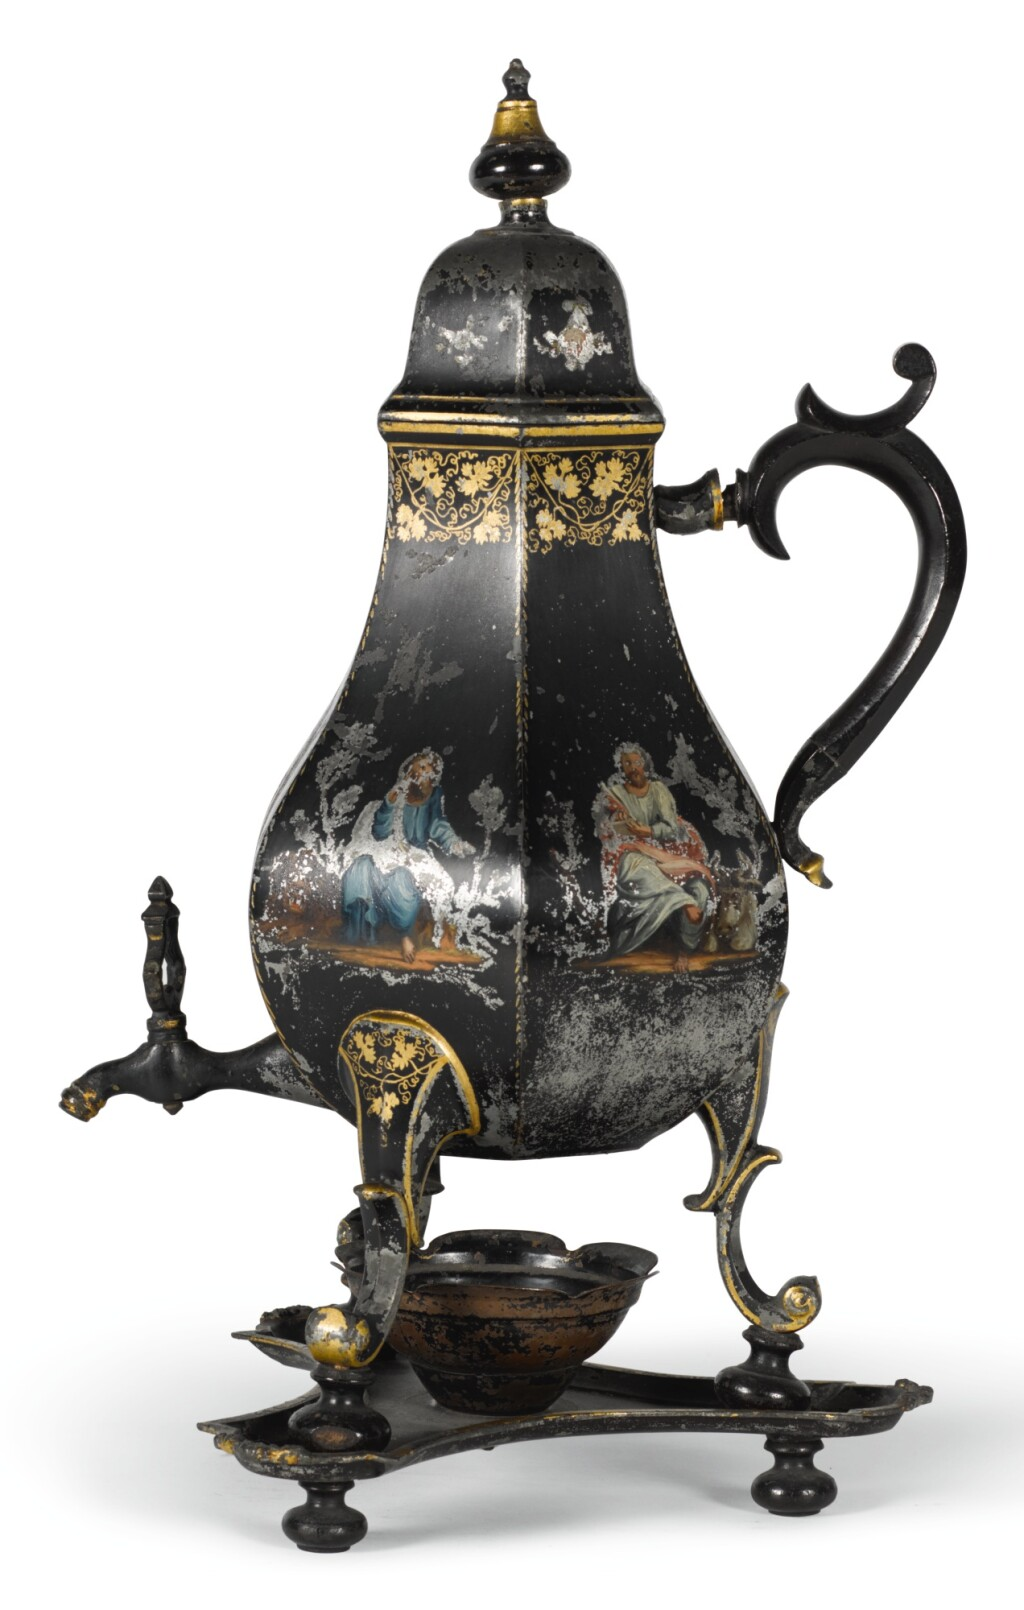 A TÔLE PEINTE HOTWATER URN AND STAND, NORTH GERMAN OR DUTCH, LATE 18TH/EARLY 19TH CENTURY